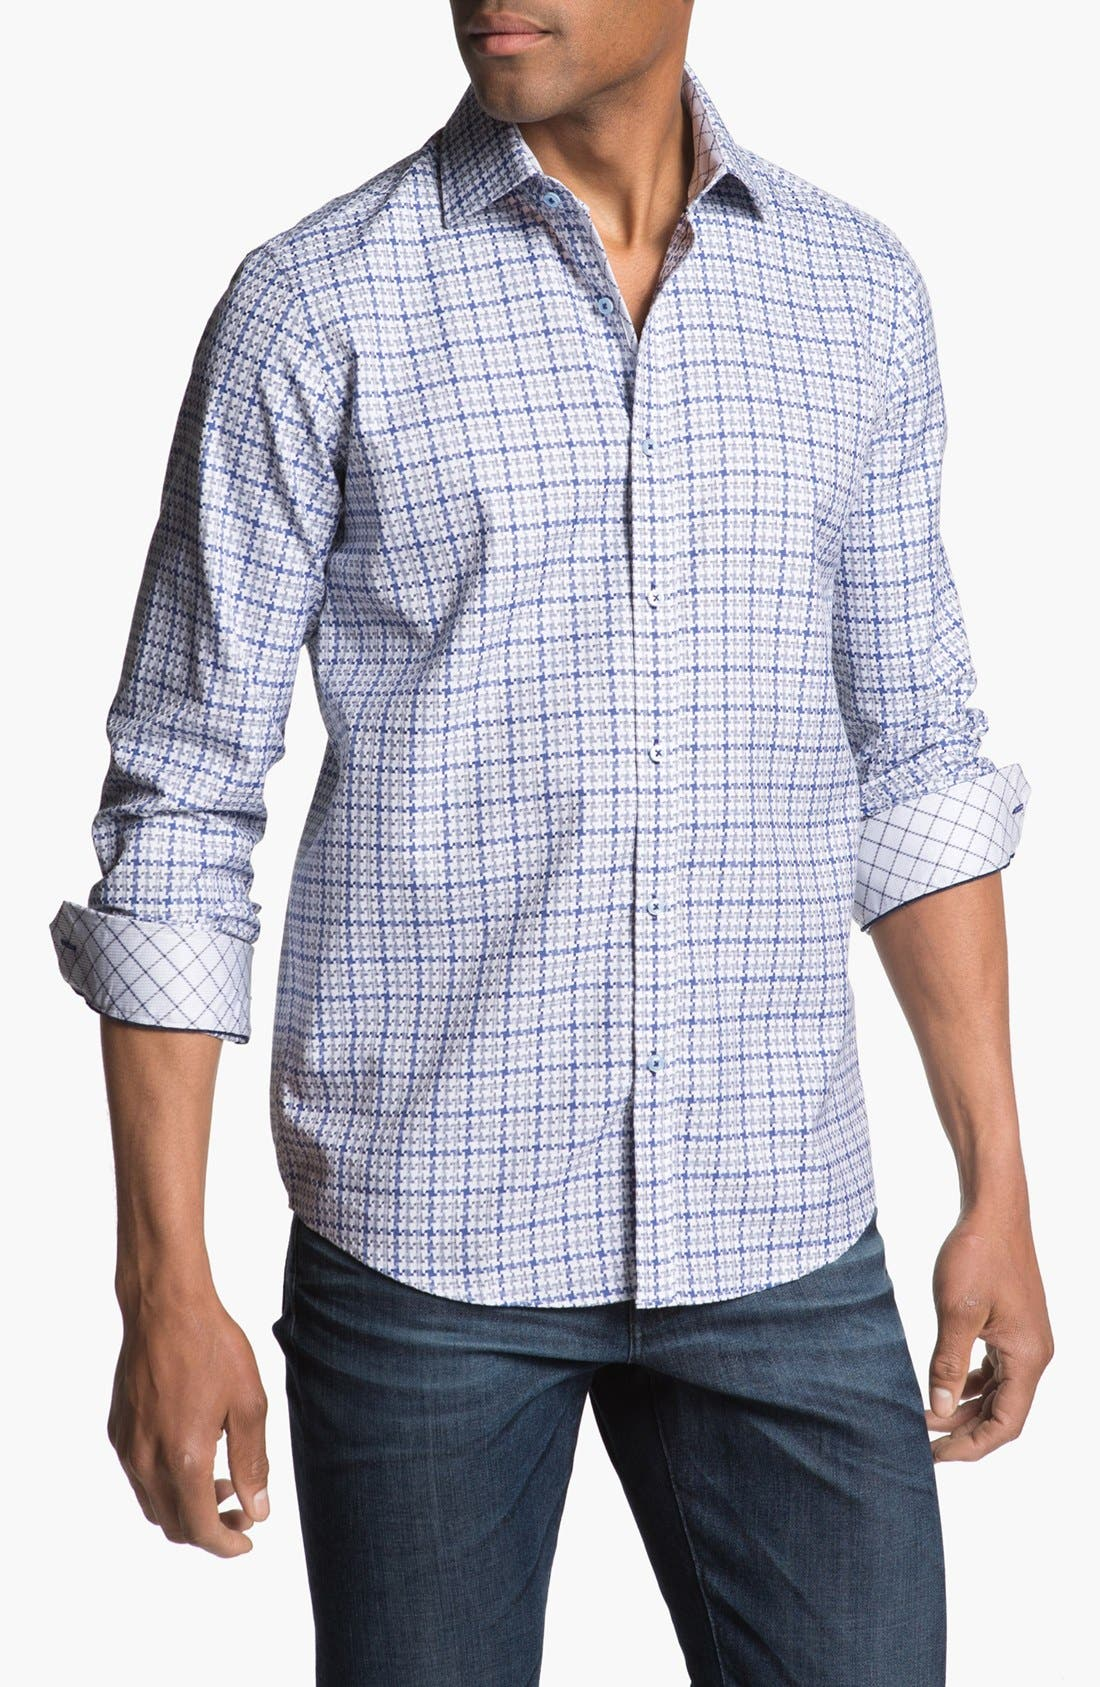 Alternate Image 1 Selected - Report Collection Regular Fit Sport Shirt